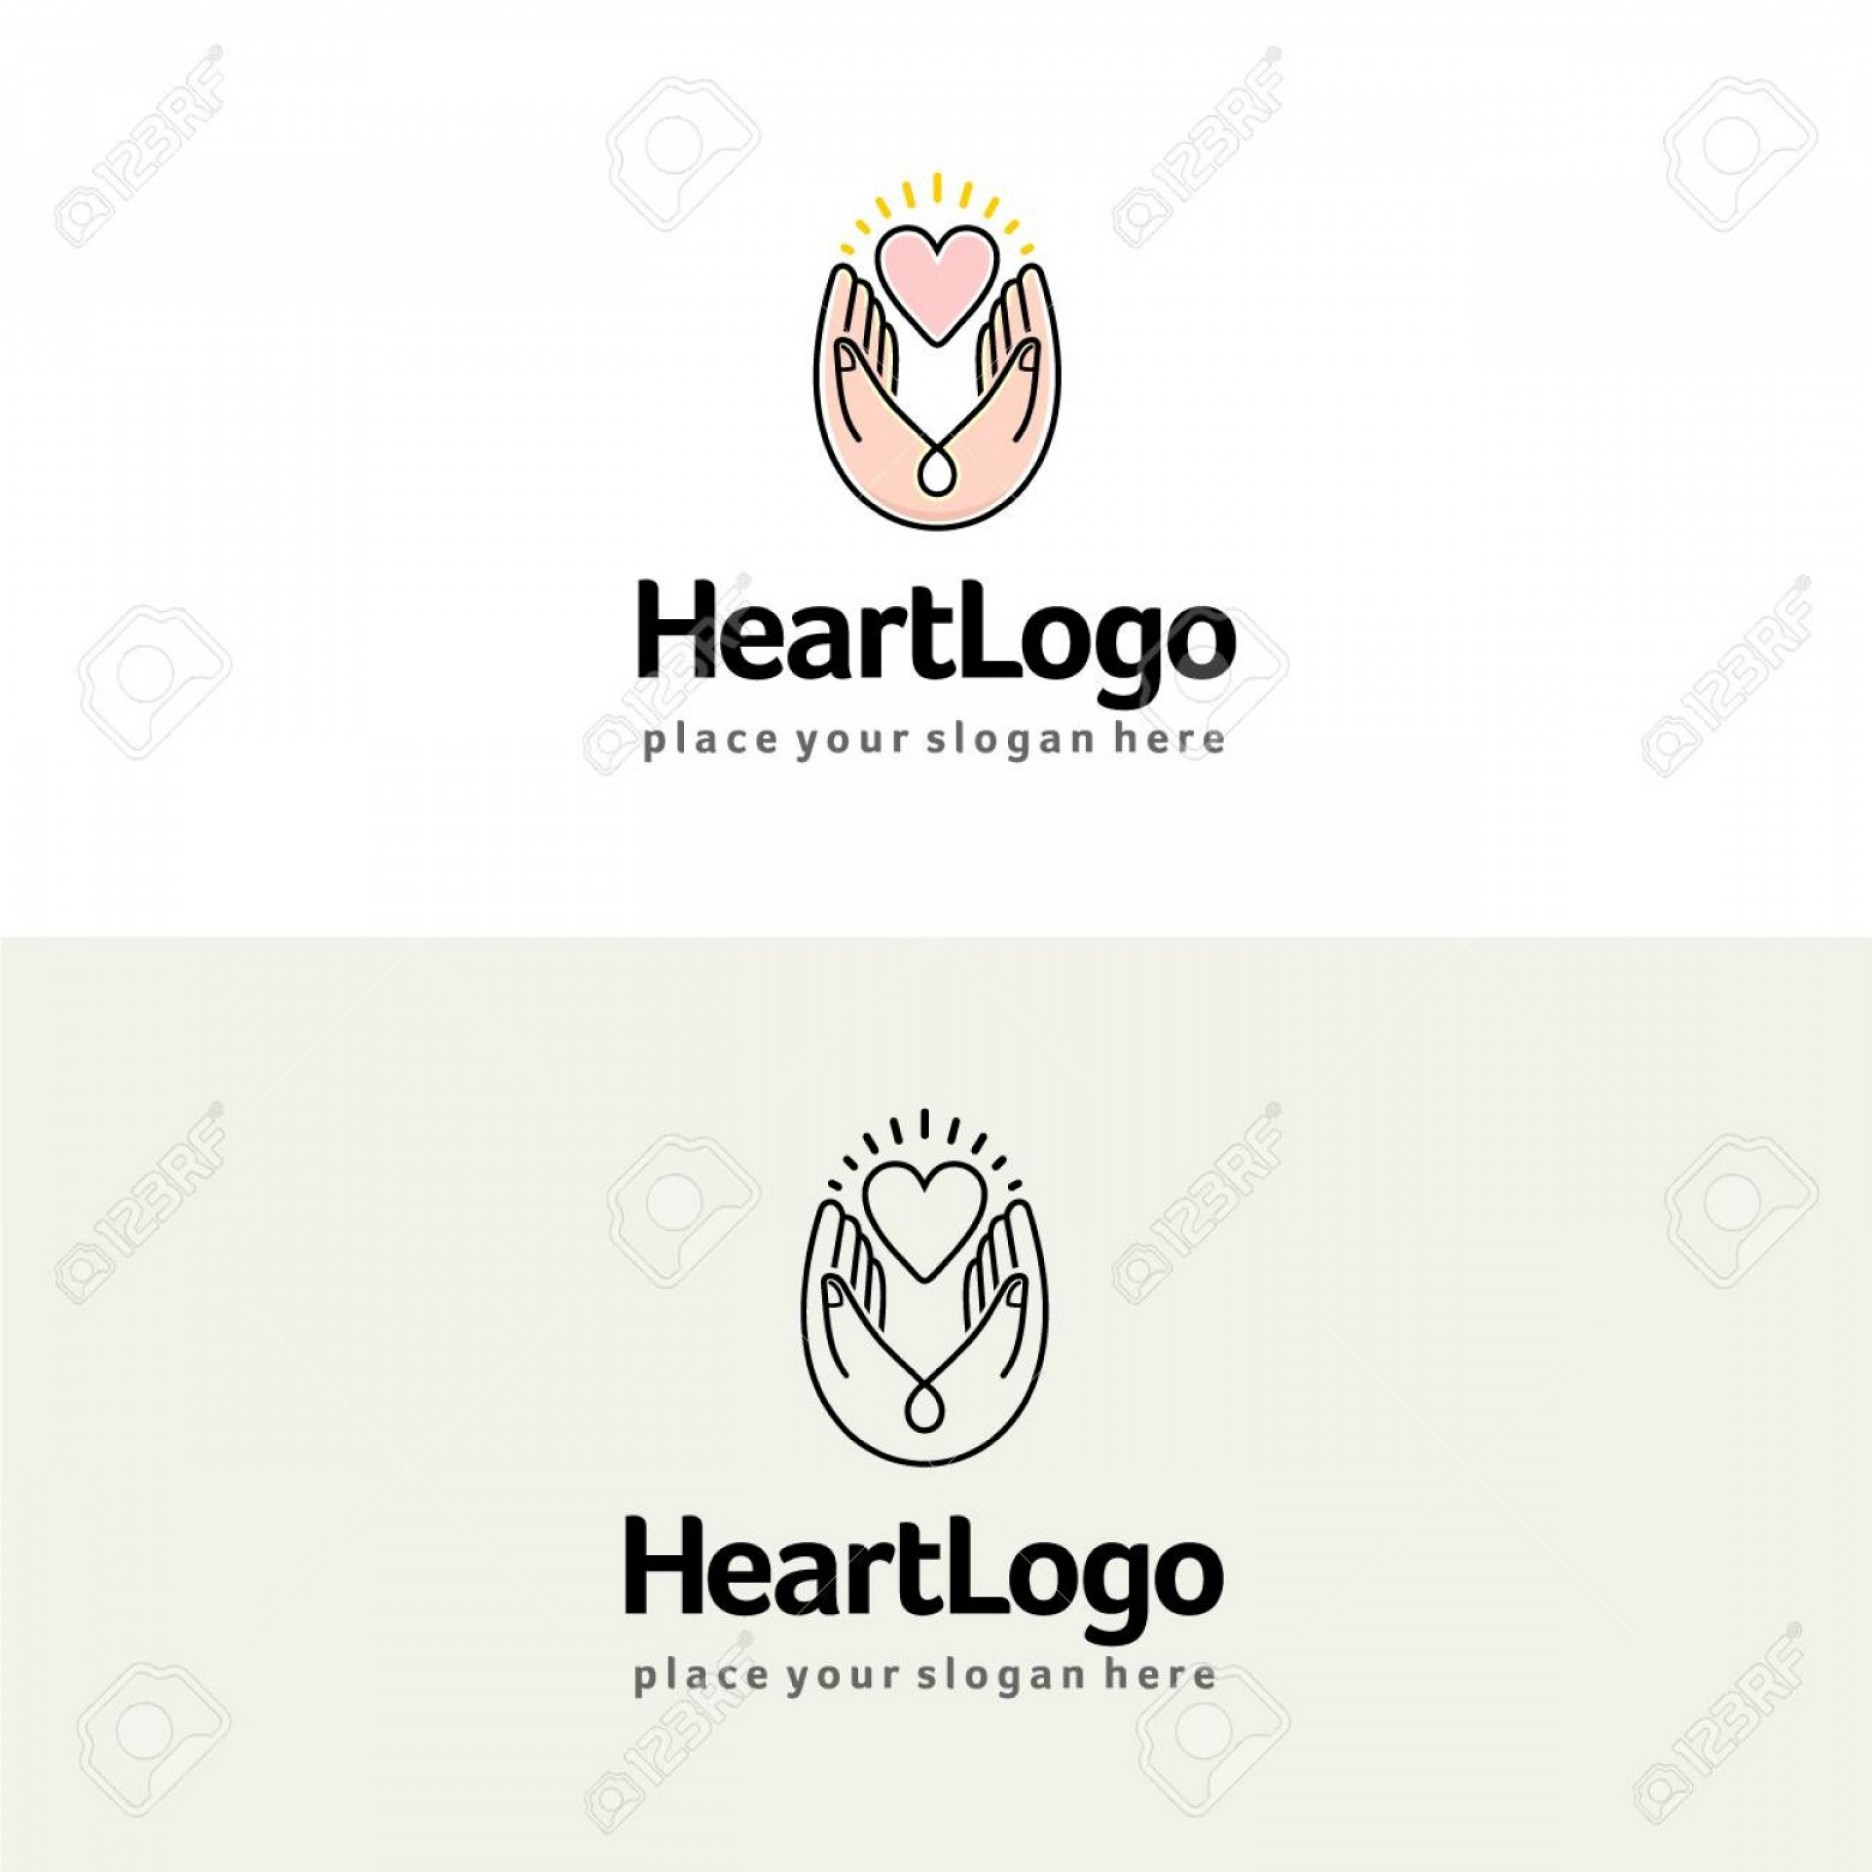 BBB Accredited Logo Vector: Photostock Vector Heart In Hands Vector Logo Charity And Care Illustration